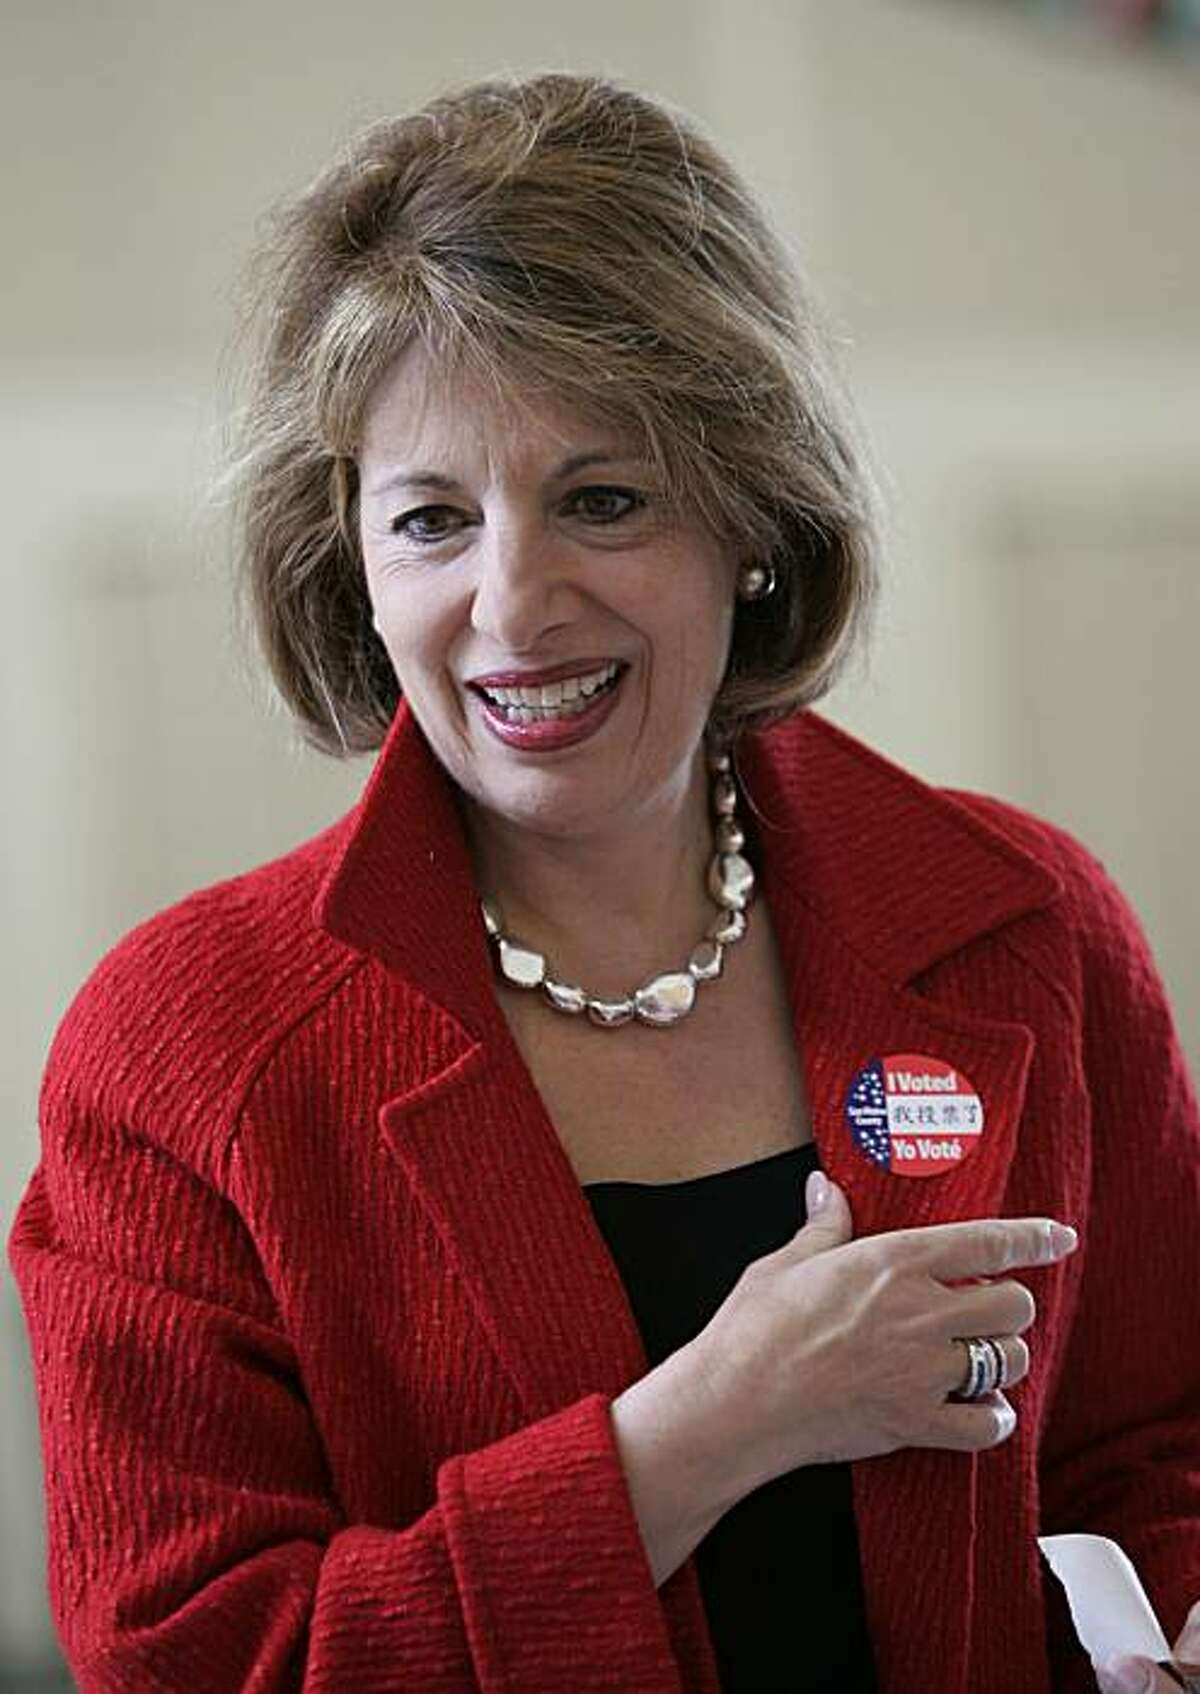 Jackie Speier smiles after voting in a special election in San Mateo, Calif., Tuesday, April 8, 2008. Speier, who as a congressional aide nearly 30 years ago was shot and left for dead on a Guyana airstrip, is seeking to win the House seat once held by her former boss. A former California state lawmaker, Speier was the favorite to win a special election to fill the House seat left vacant by the death of Democratic Rep. Tom Lantos. (AP Photo/Paul Sakuma)